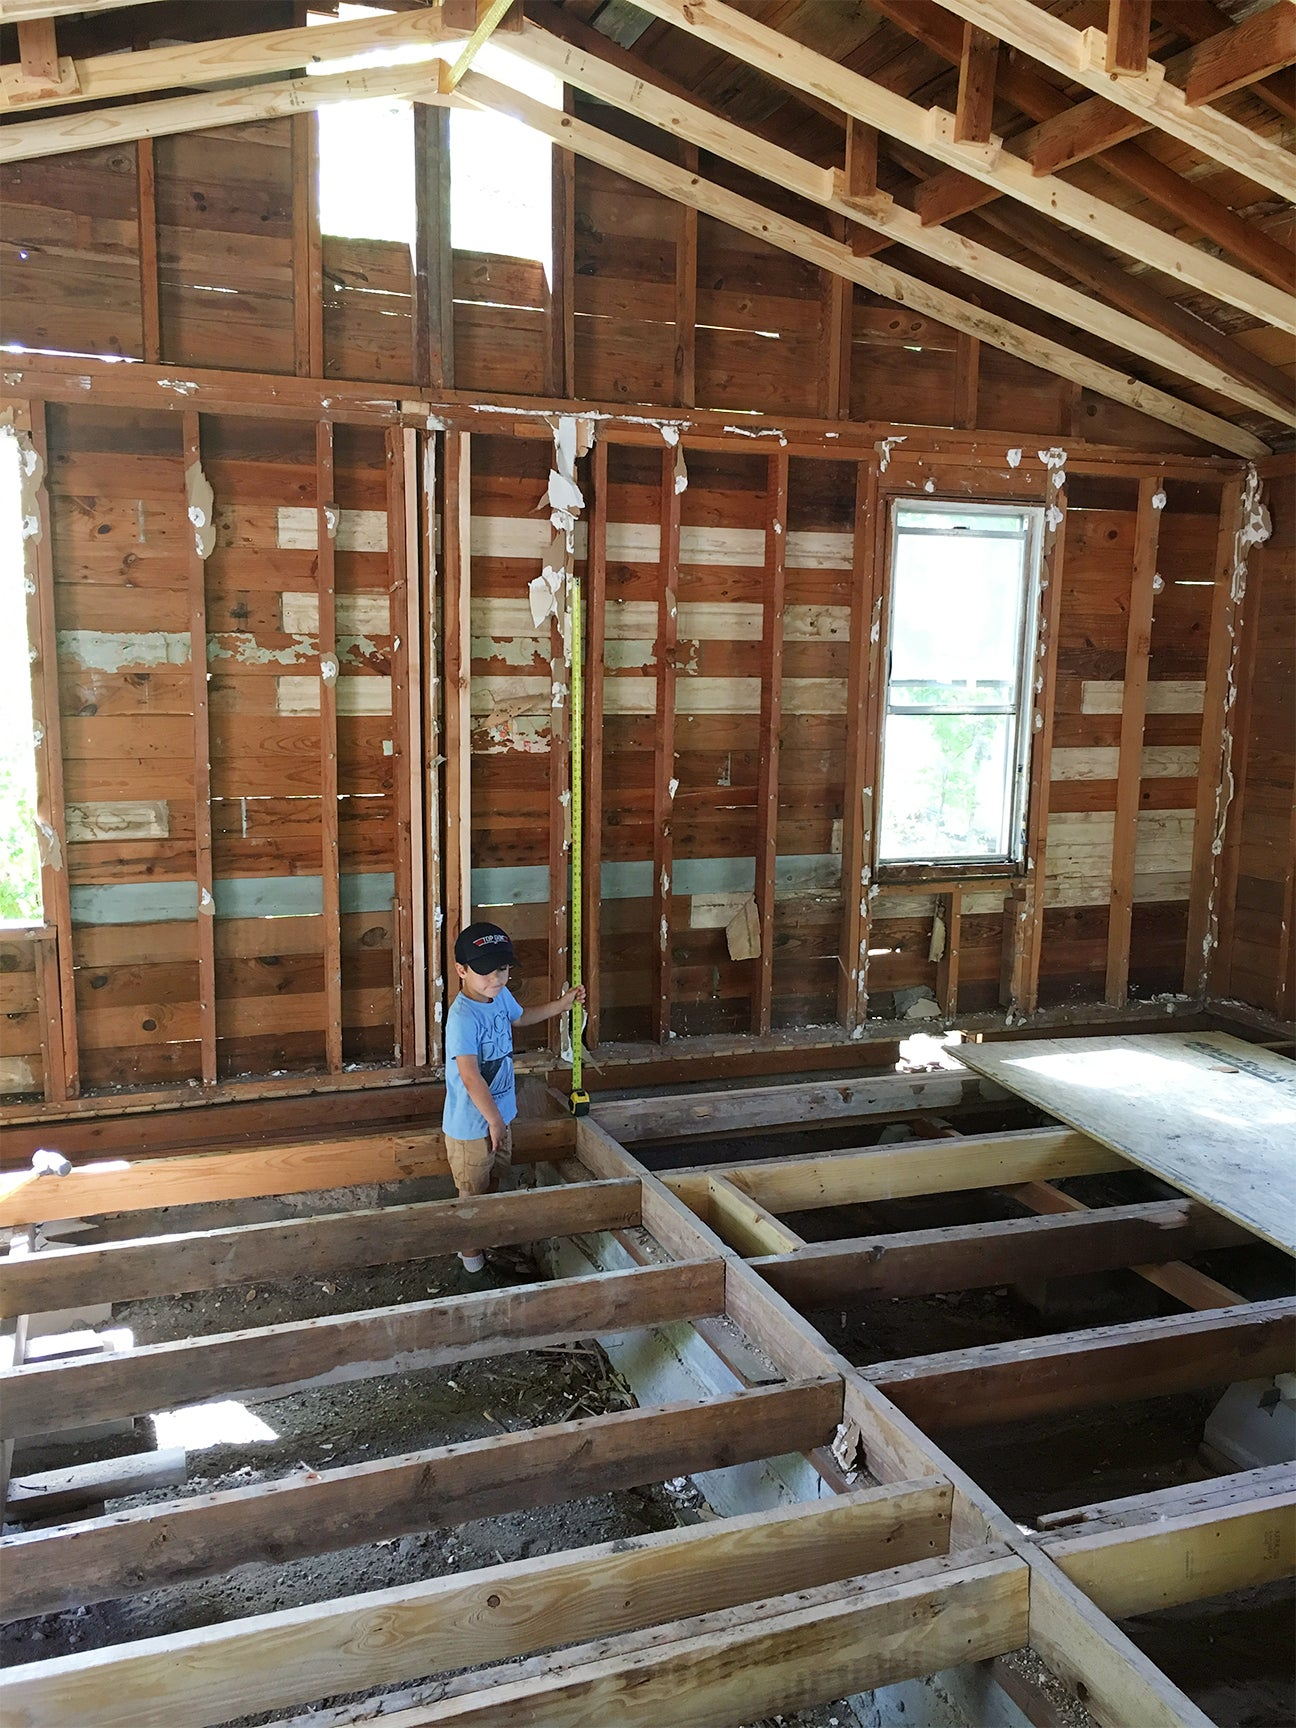 Before image of unfinished home.